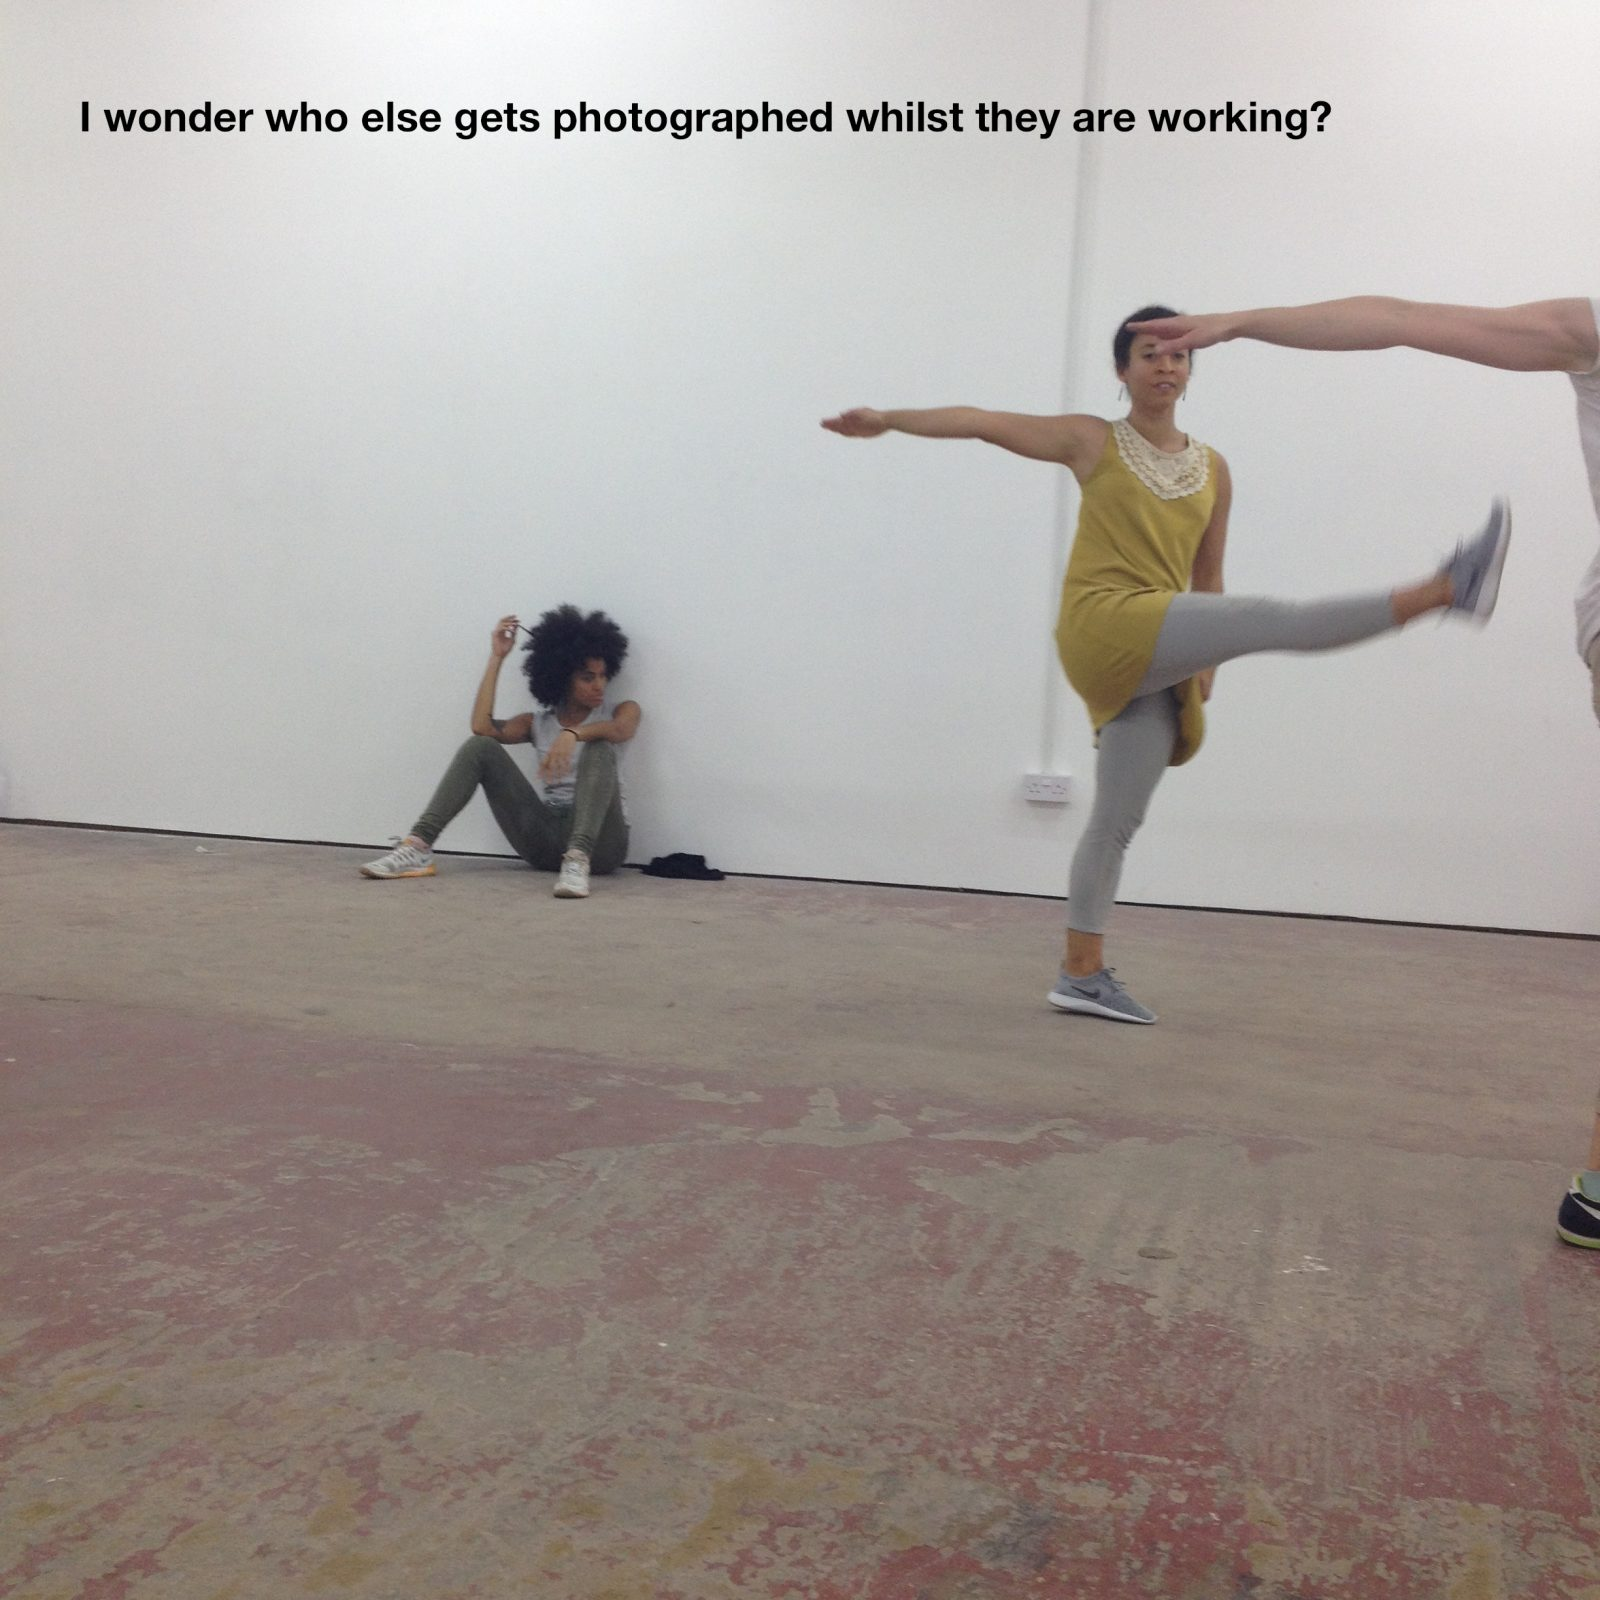 Dancers mid movement in a white gallery space. A person sits on the floor behind the dancers. Black text appears at the top of the image. It reads: 'I wonder who else gets photographed whilst they are working?'